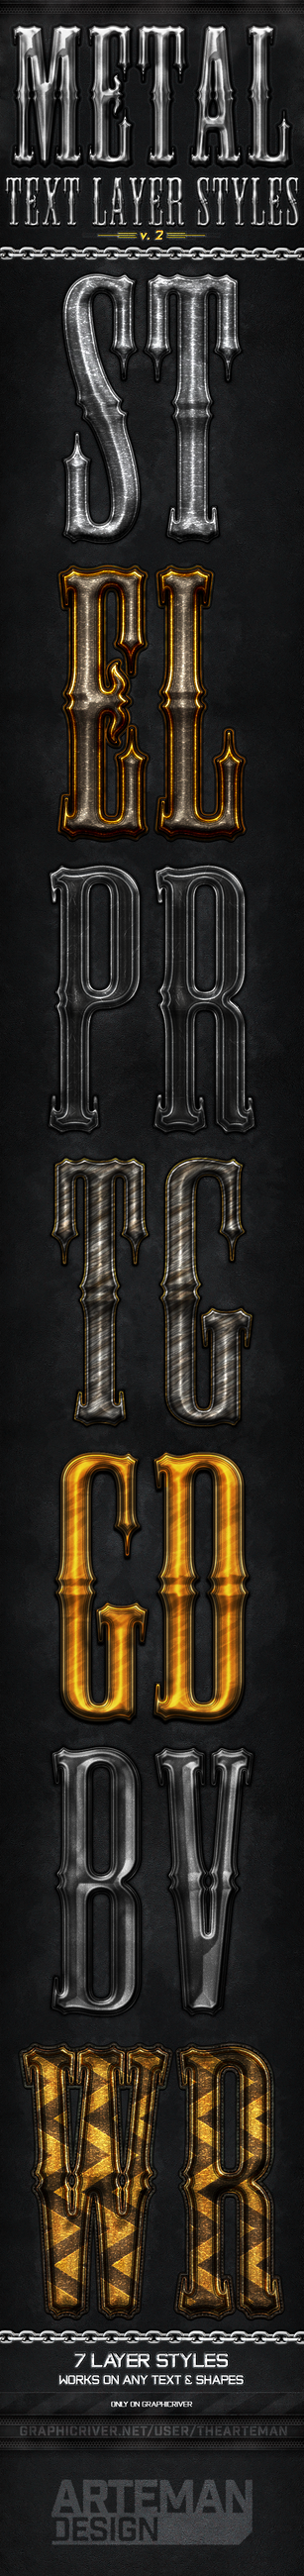 Metal Photoshop Text Styles V2 by TheArteMan